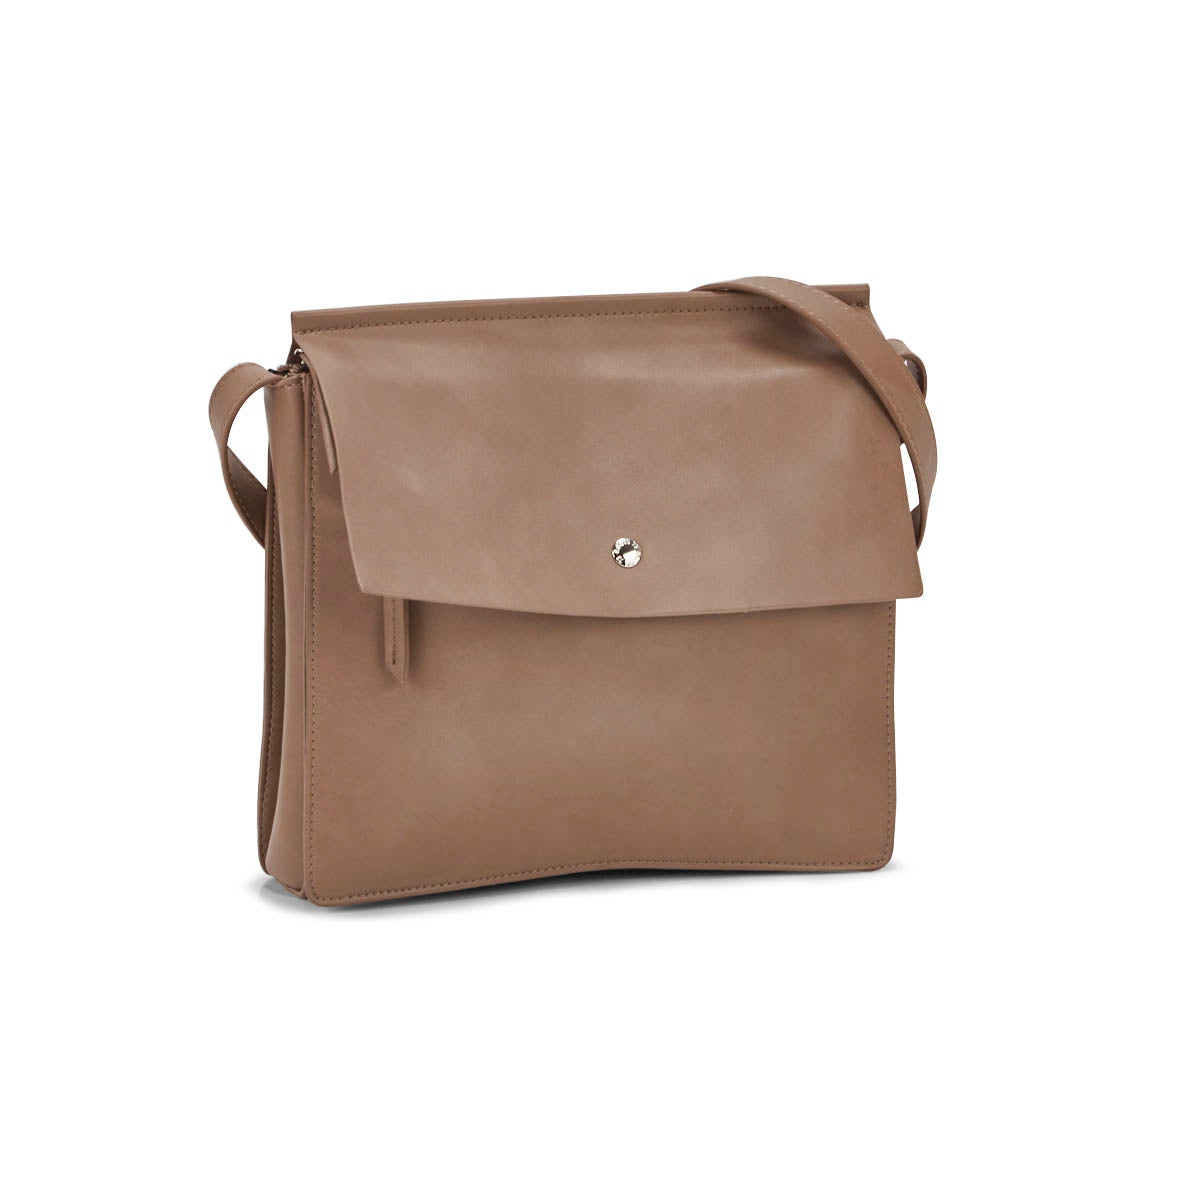 Lds Roots73 taupe flapover crossbody